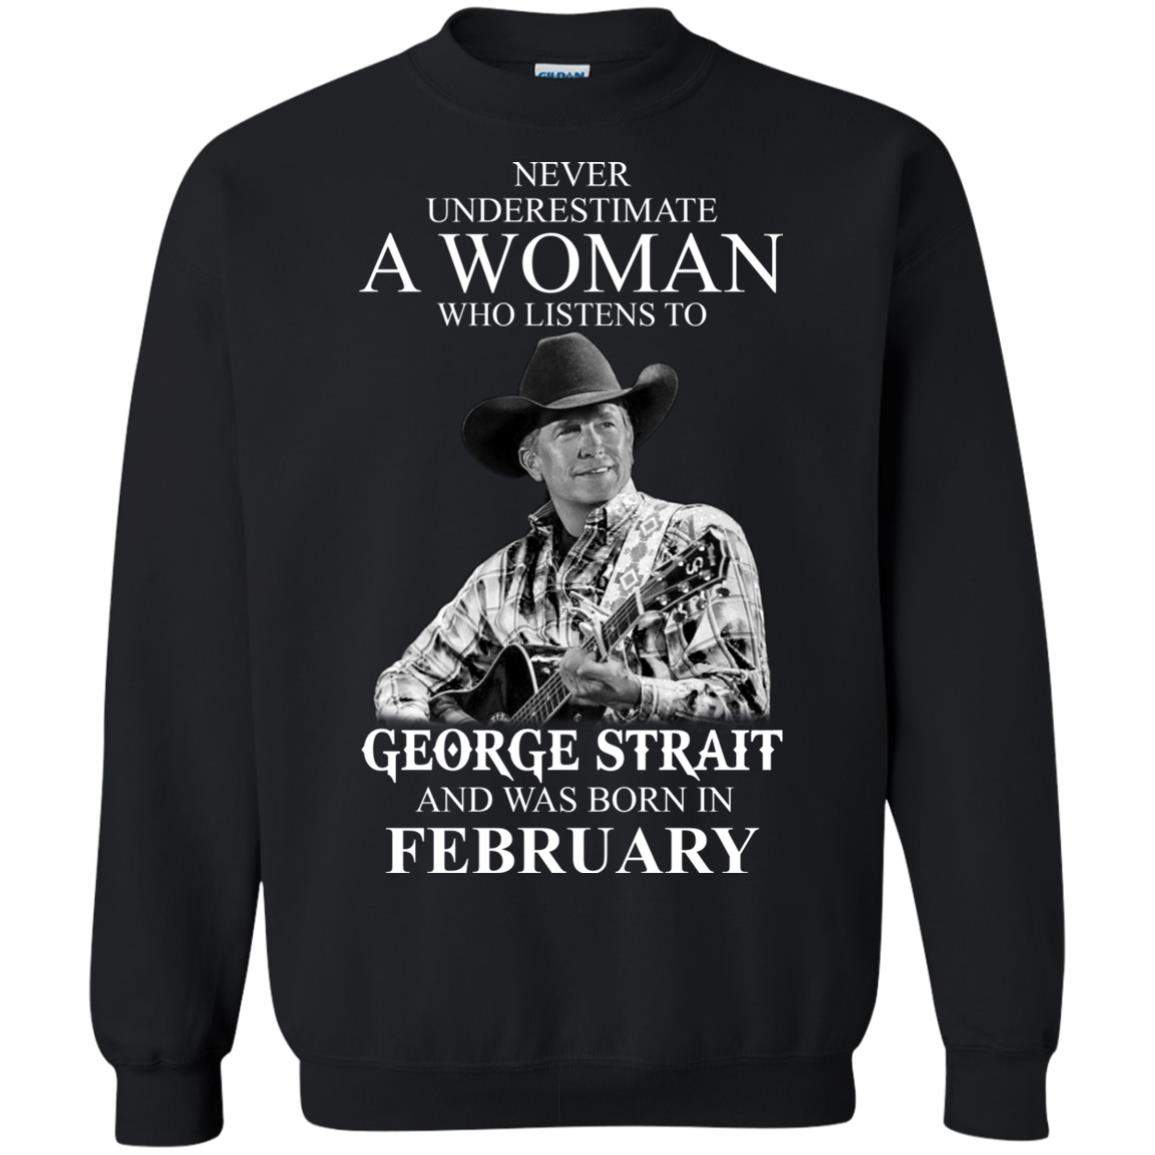 image 452 - Never Underestimate A Woman Who Listens To George Strait And Was Born In February shirt